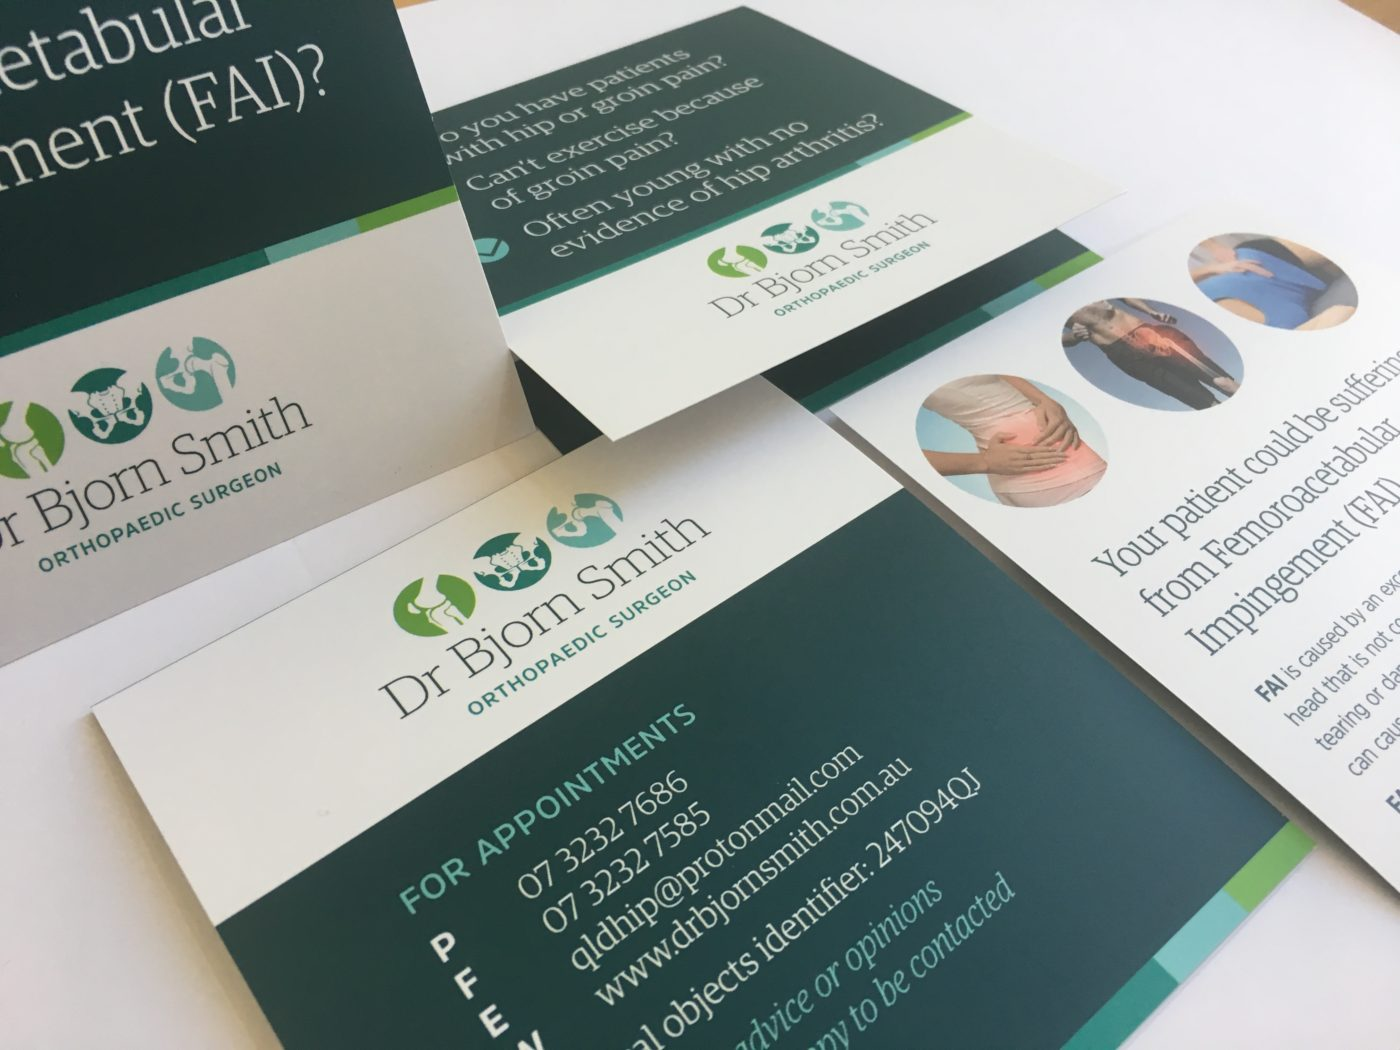 Logo, branding and print design for Dr Bjorn Smith